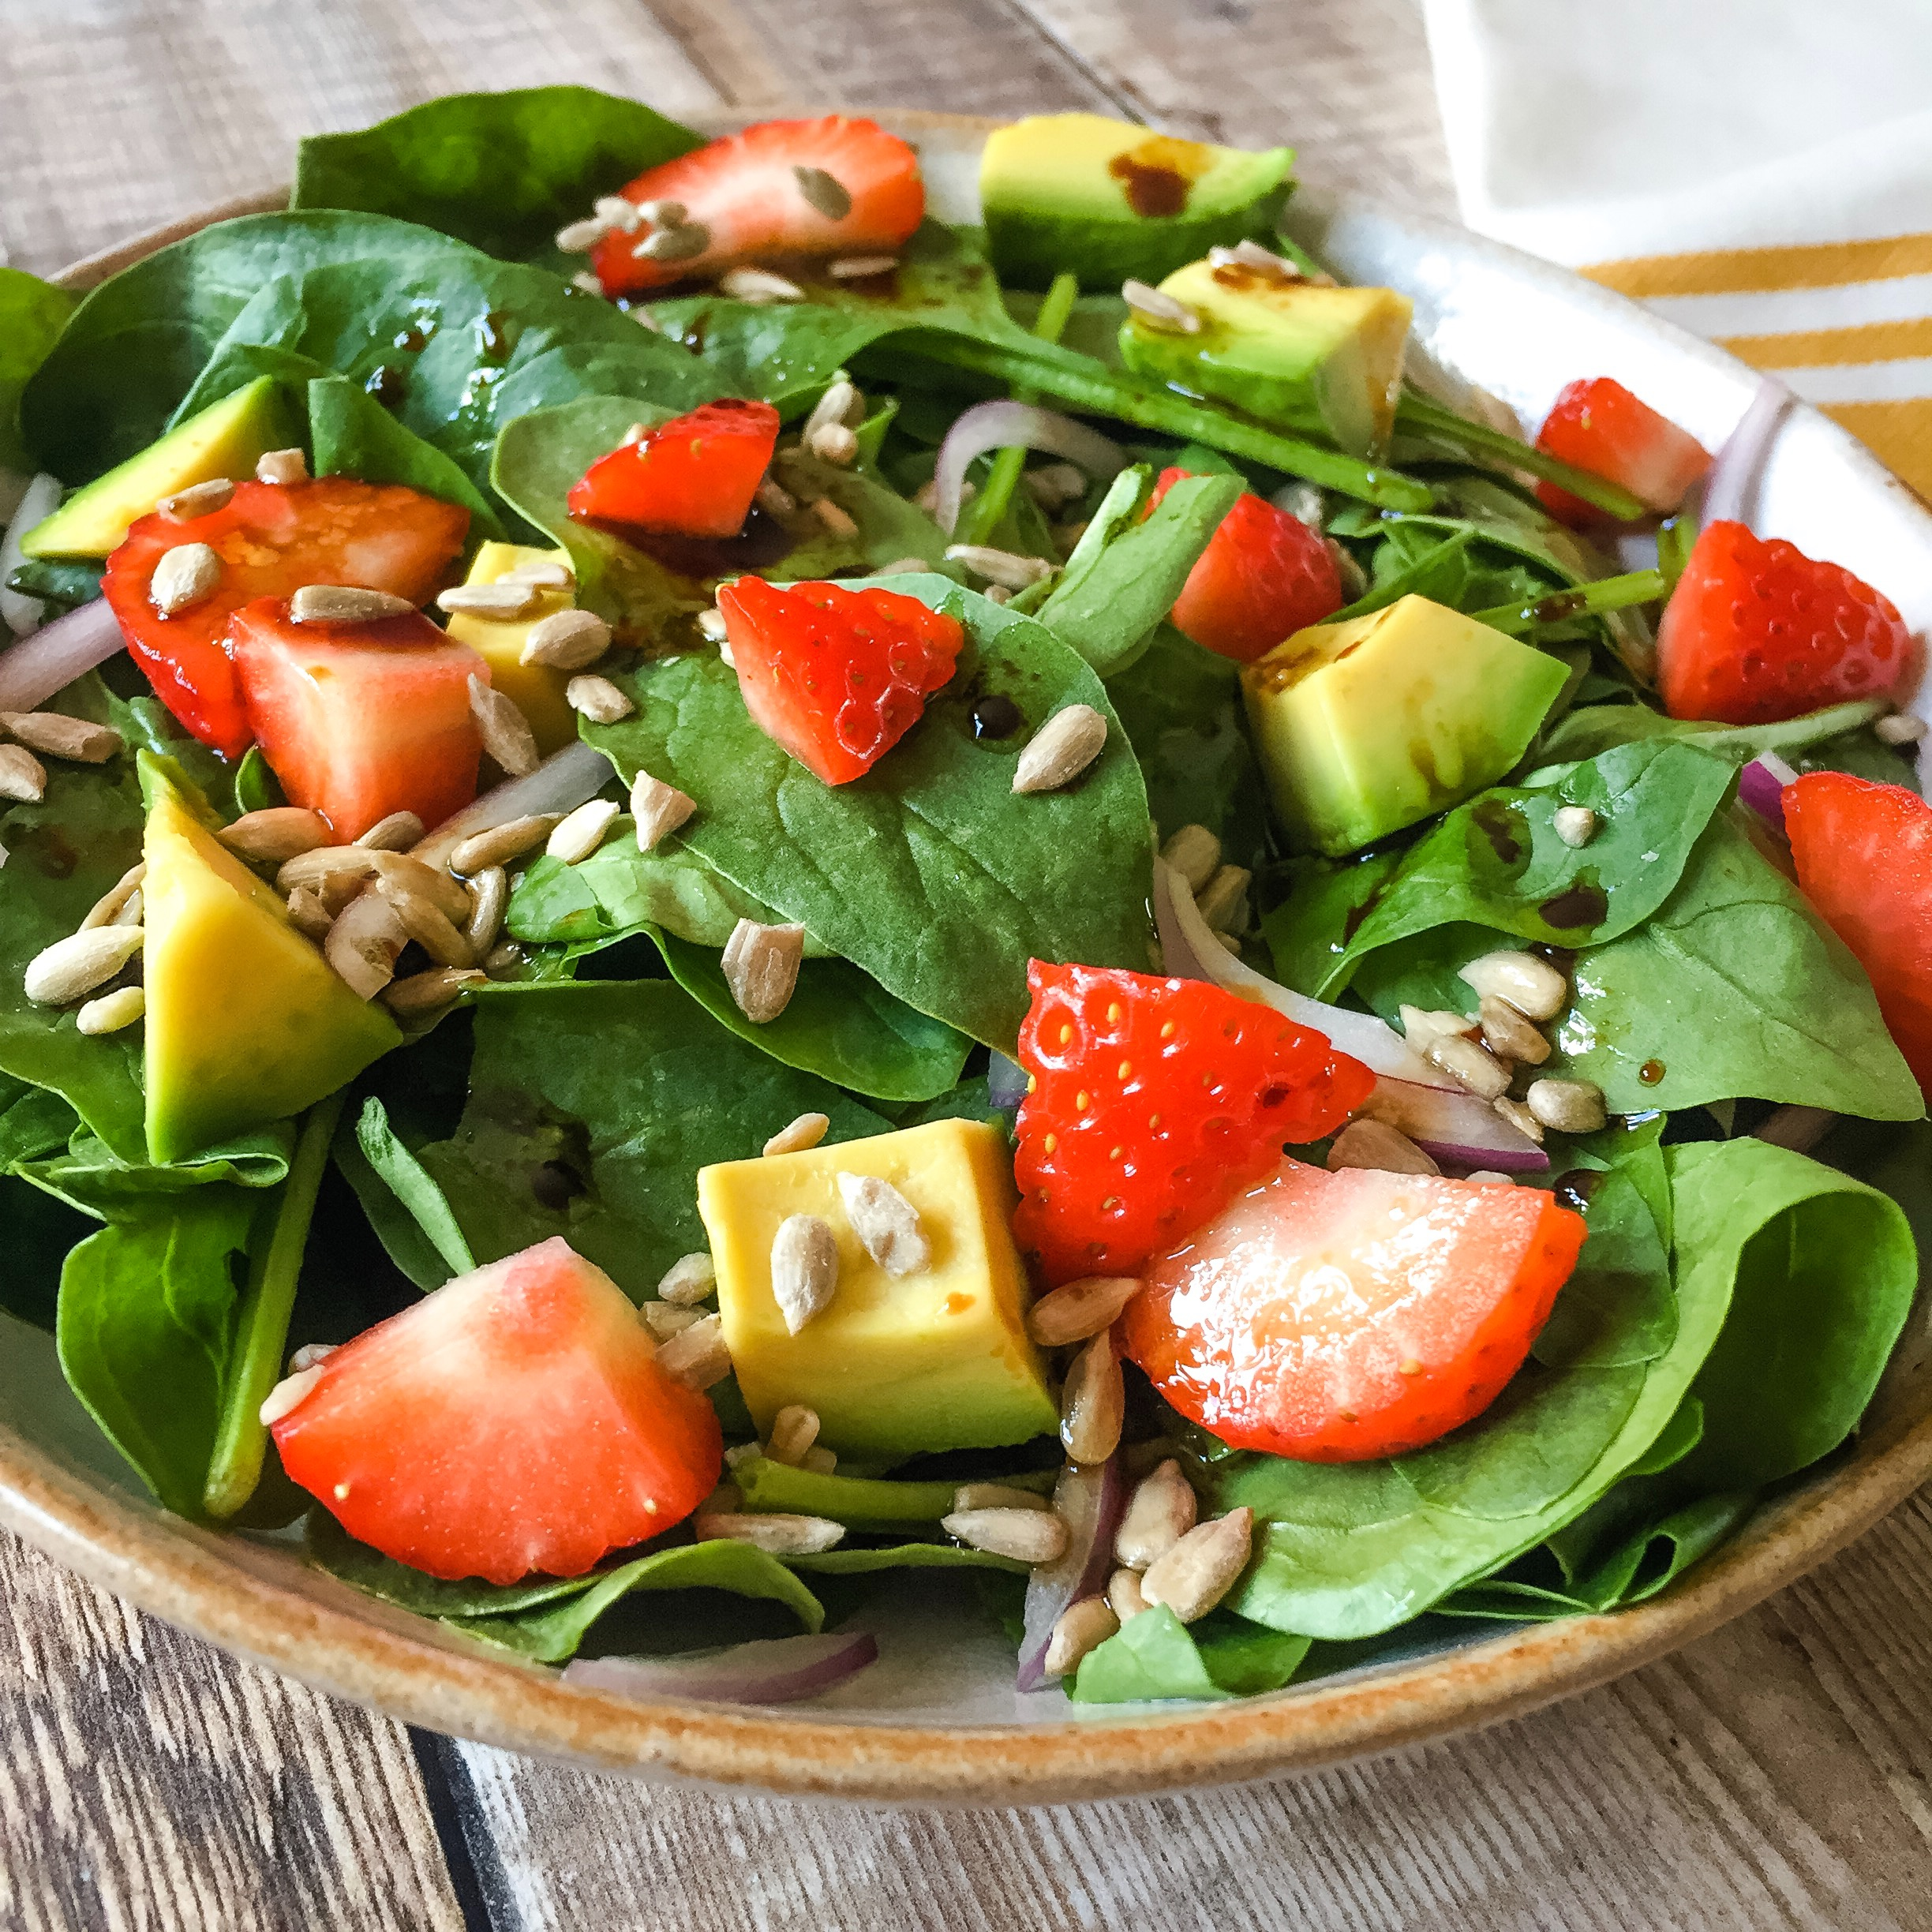 Spinach, Strawberry & Avocado Salad